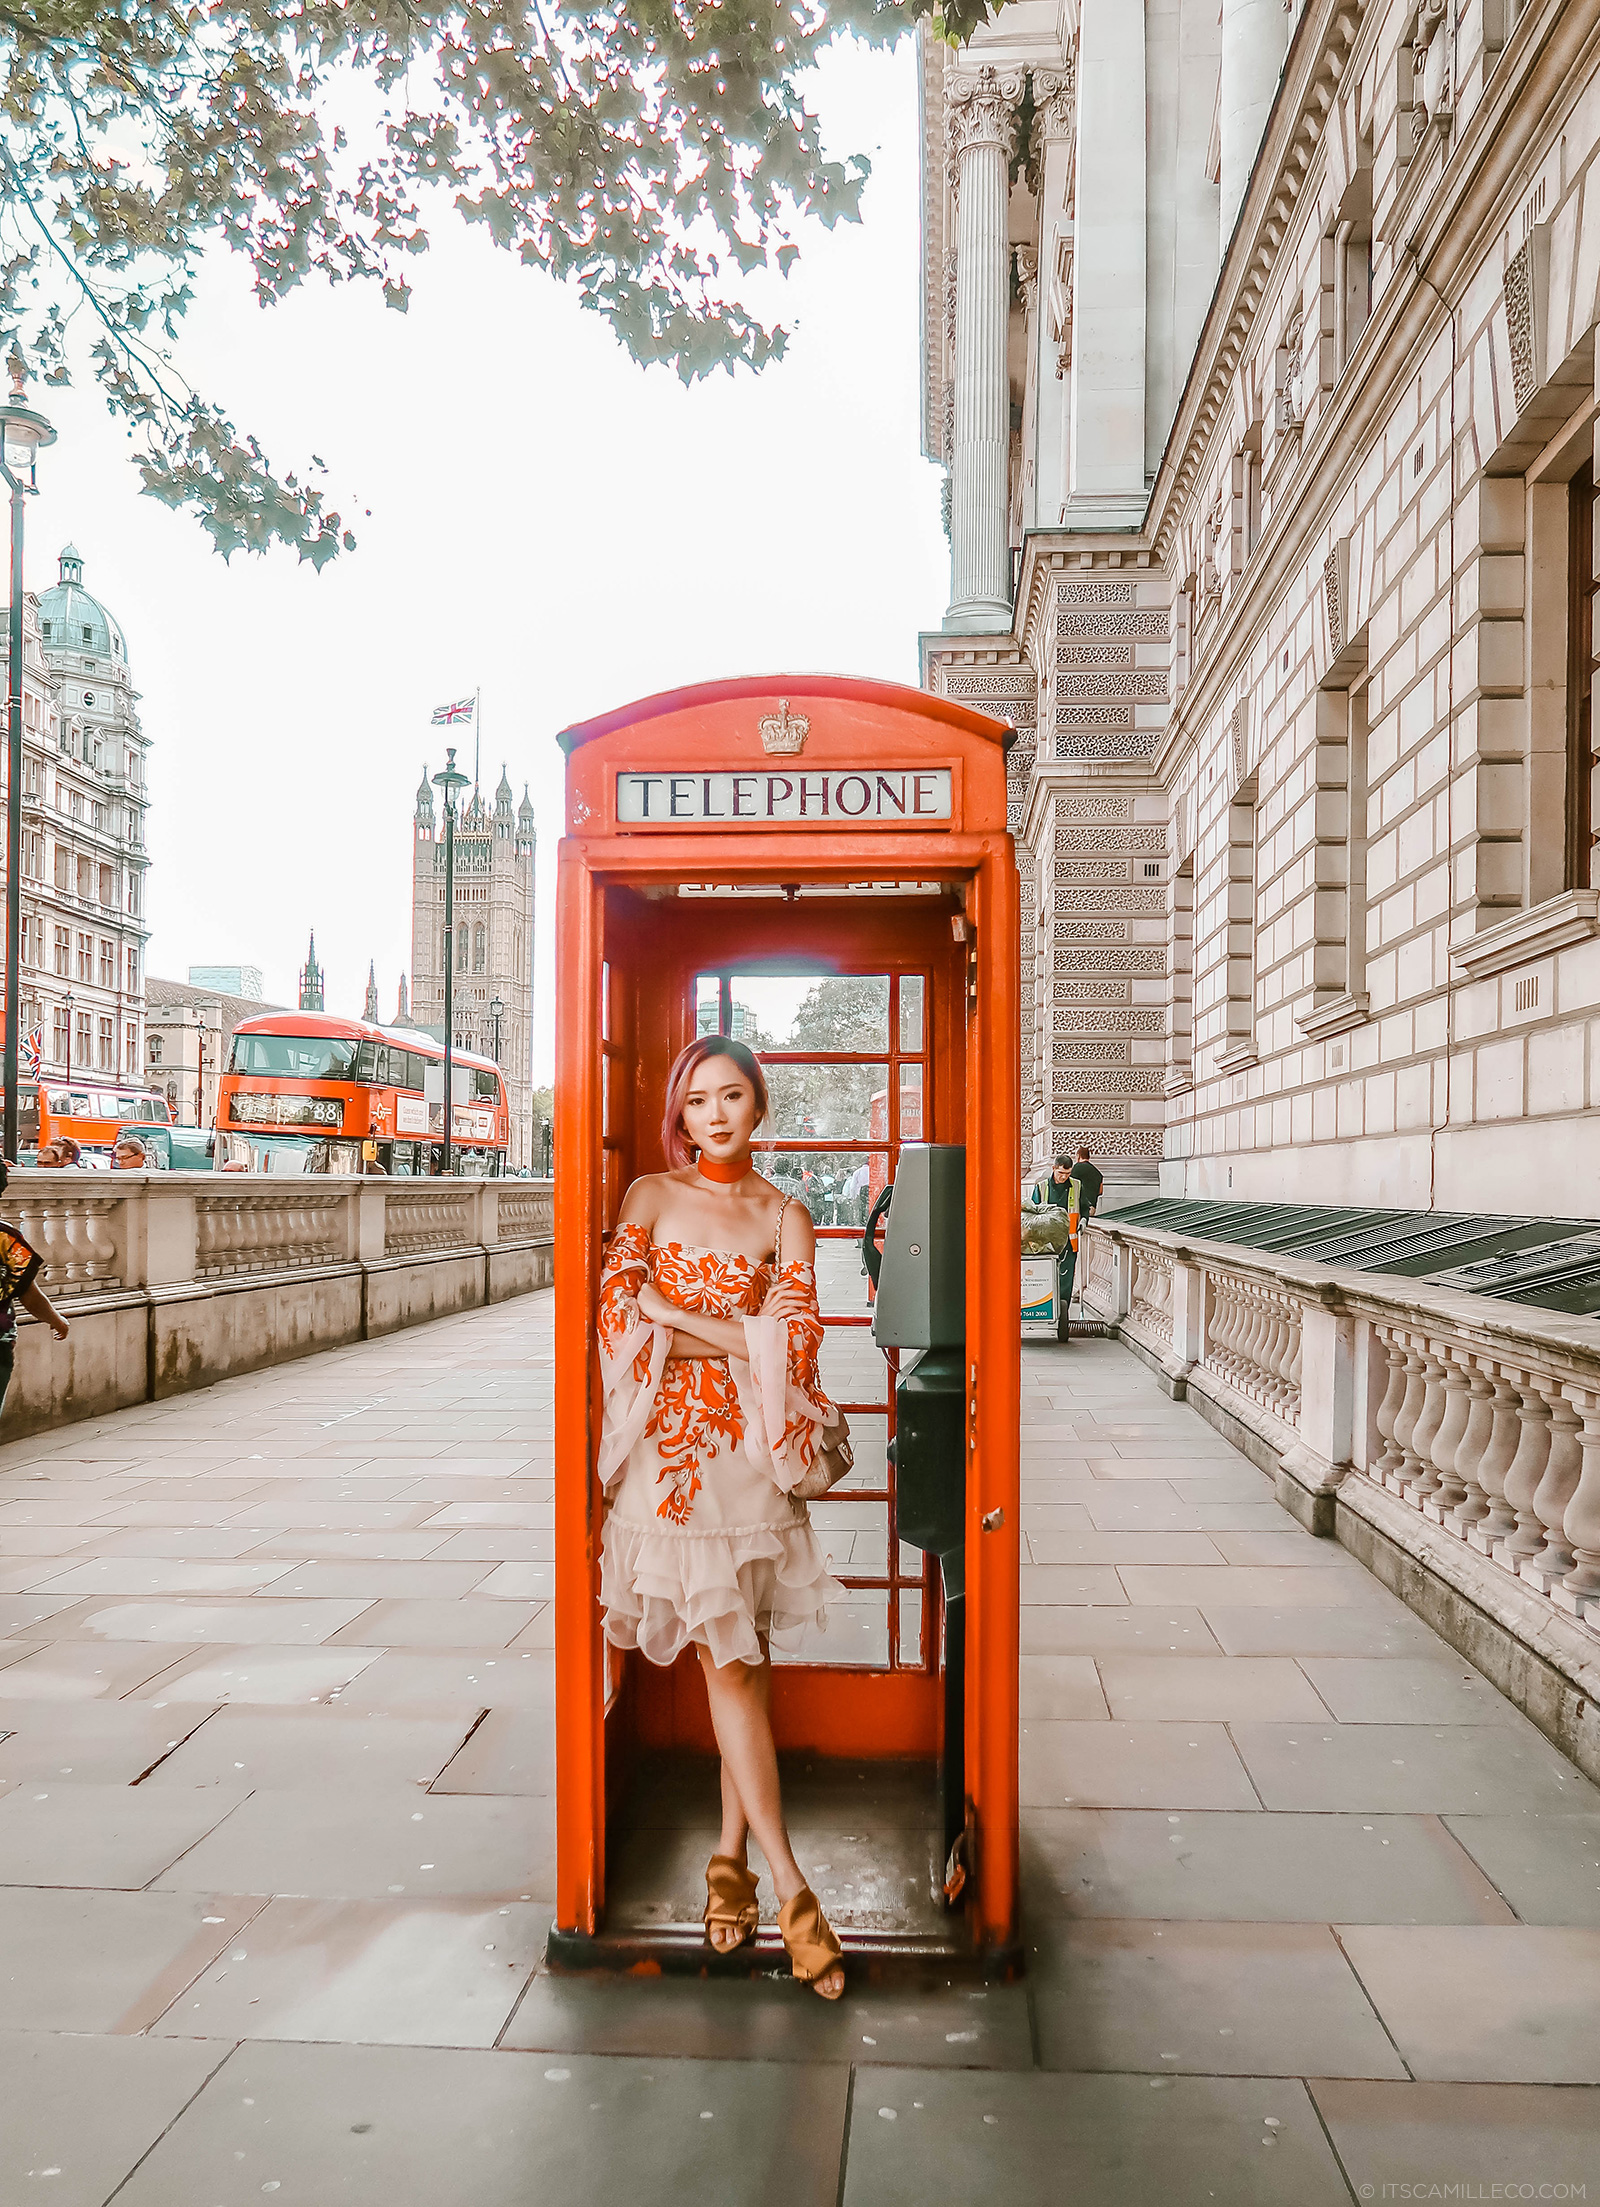 London Phone Booth - Camille Co